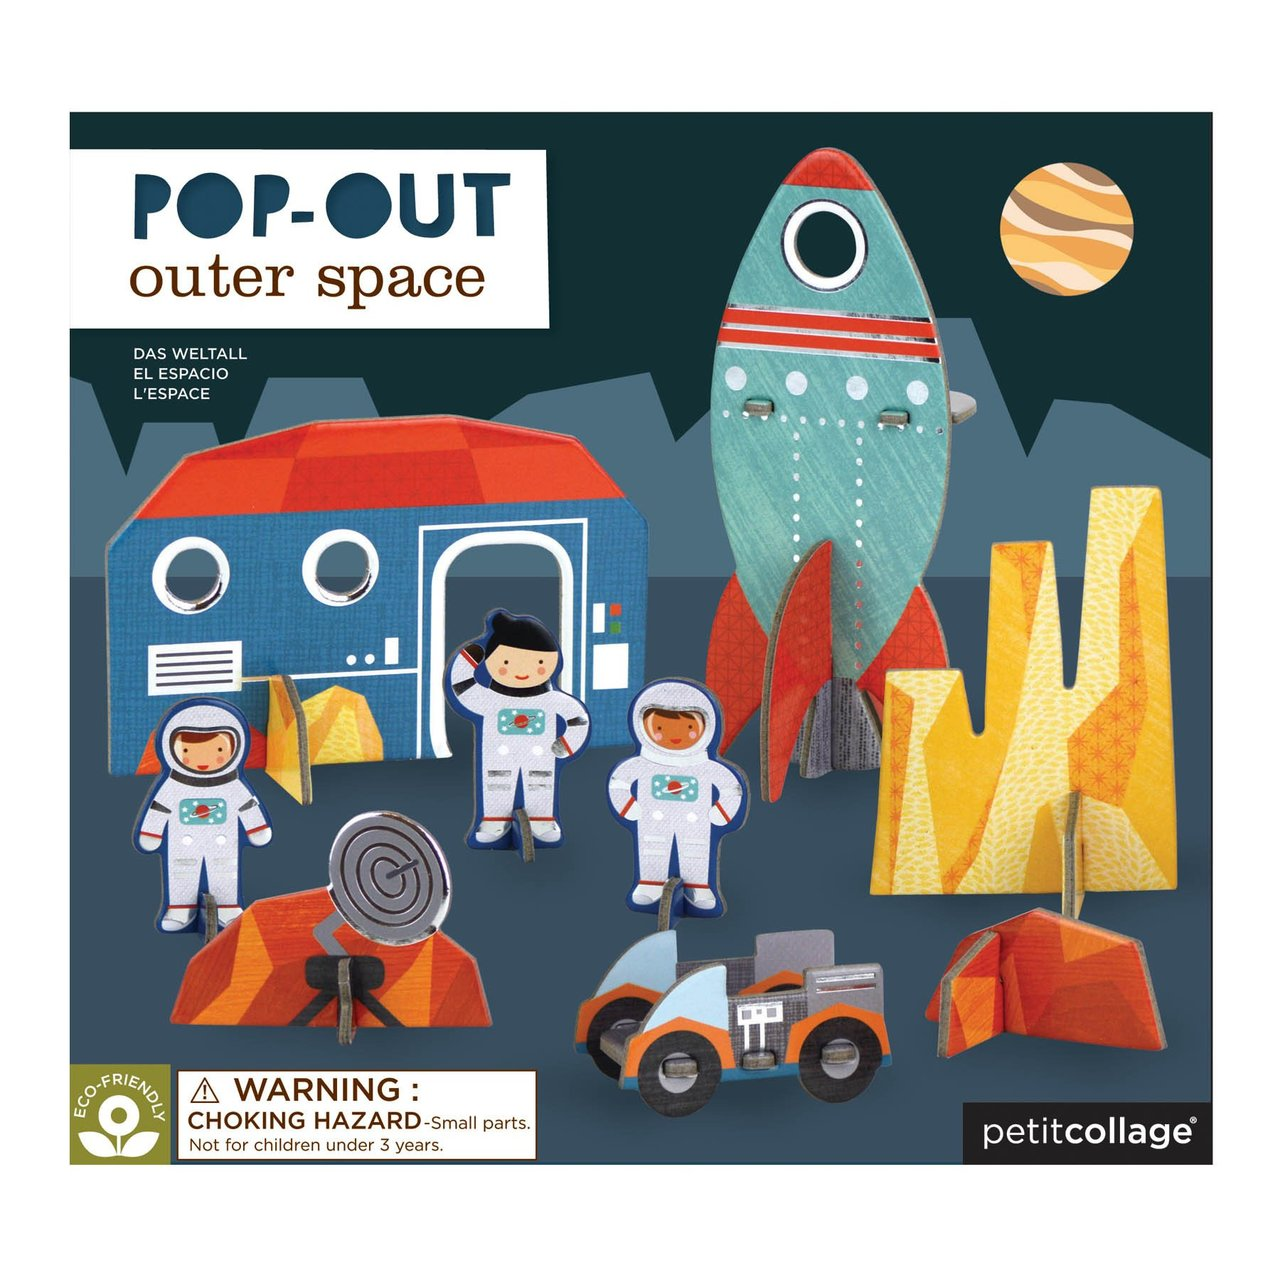 Pop-out and Play Outer Space